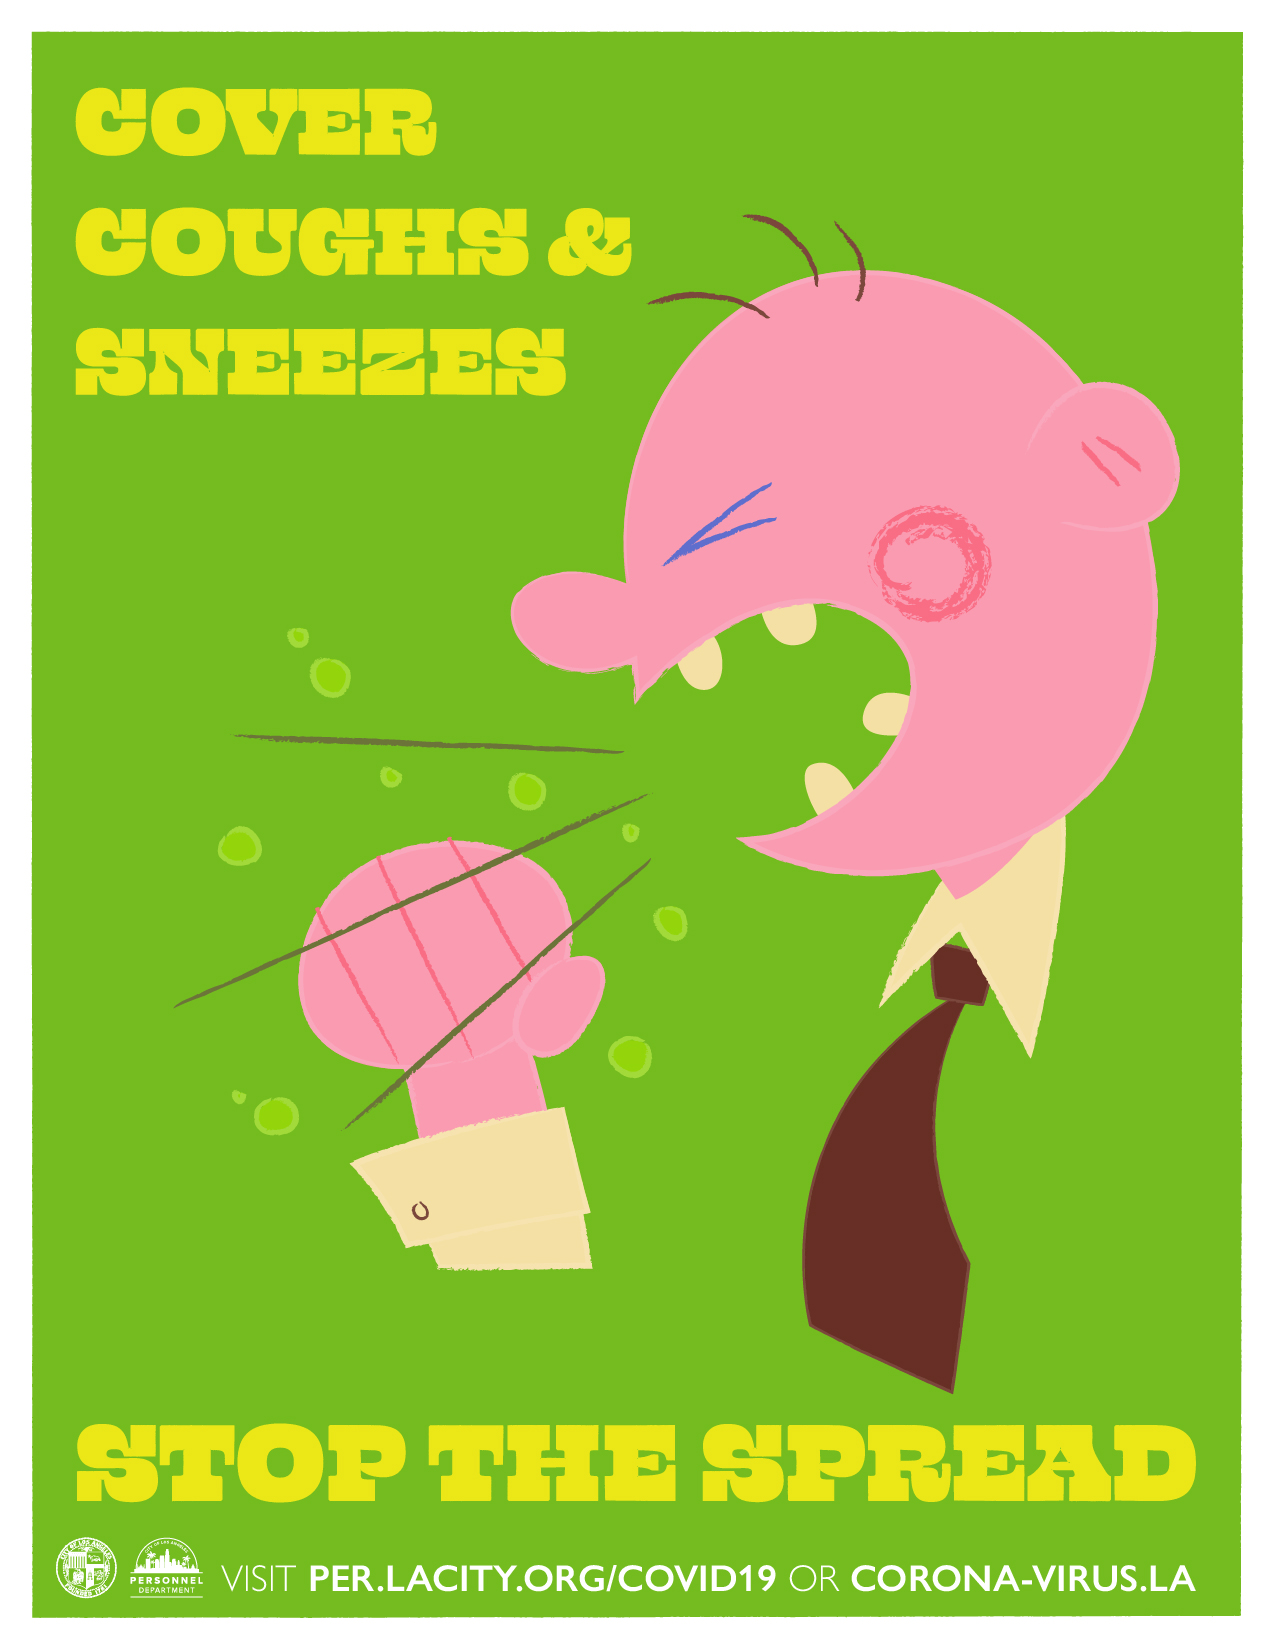 Stop The Spread: Cover Coughs & Sneezes Illustration